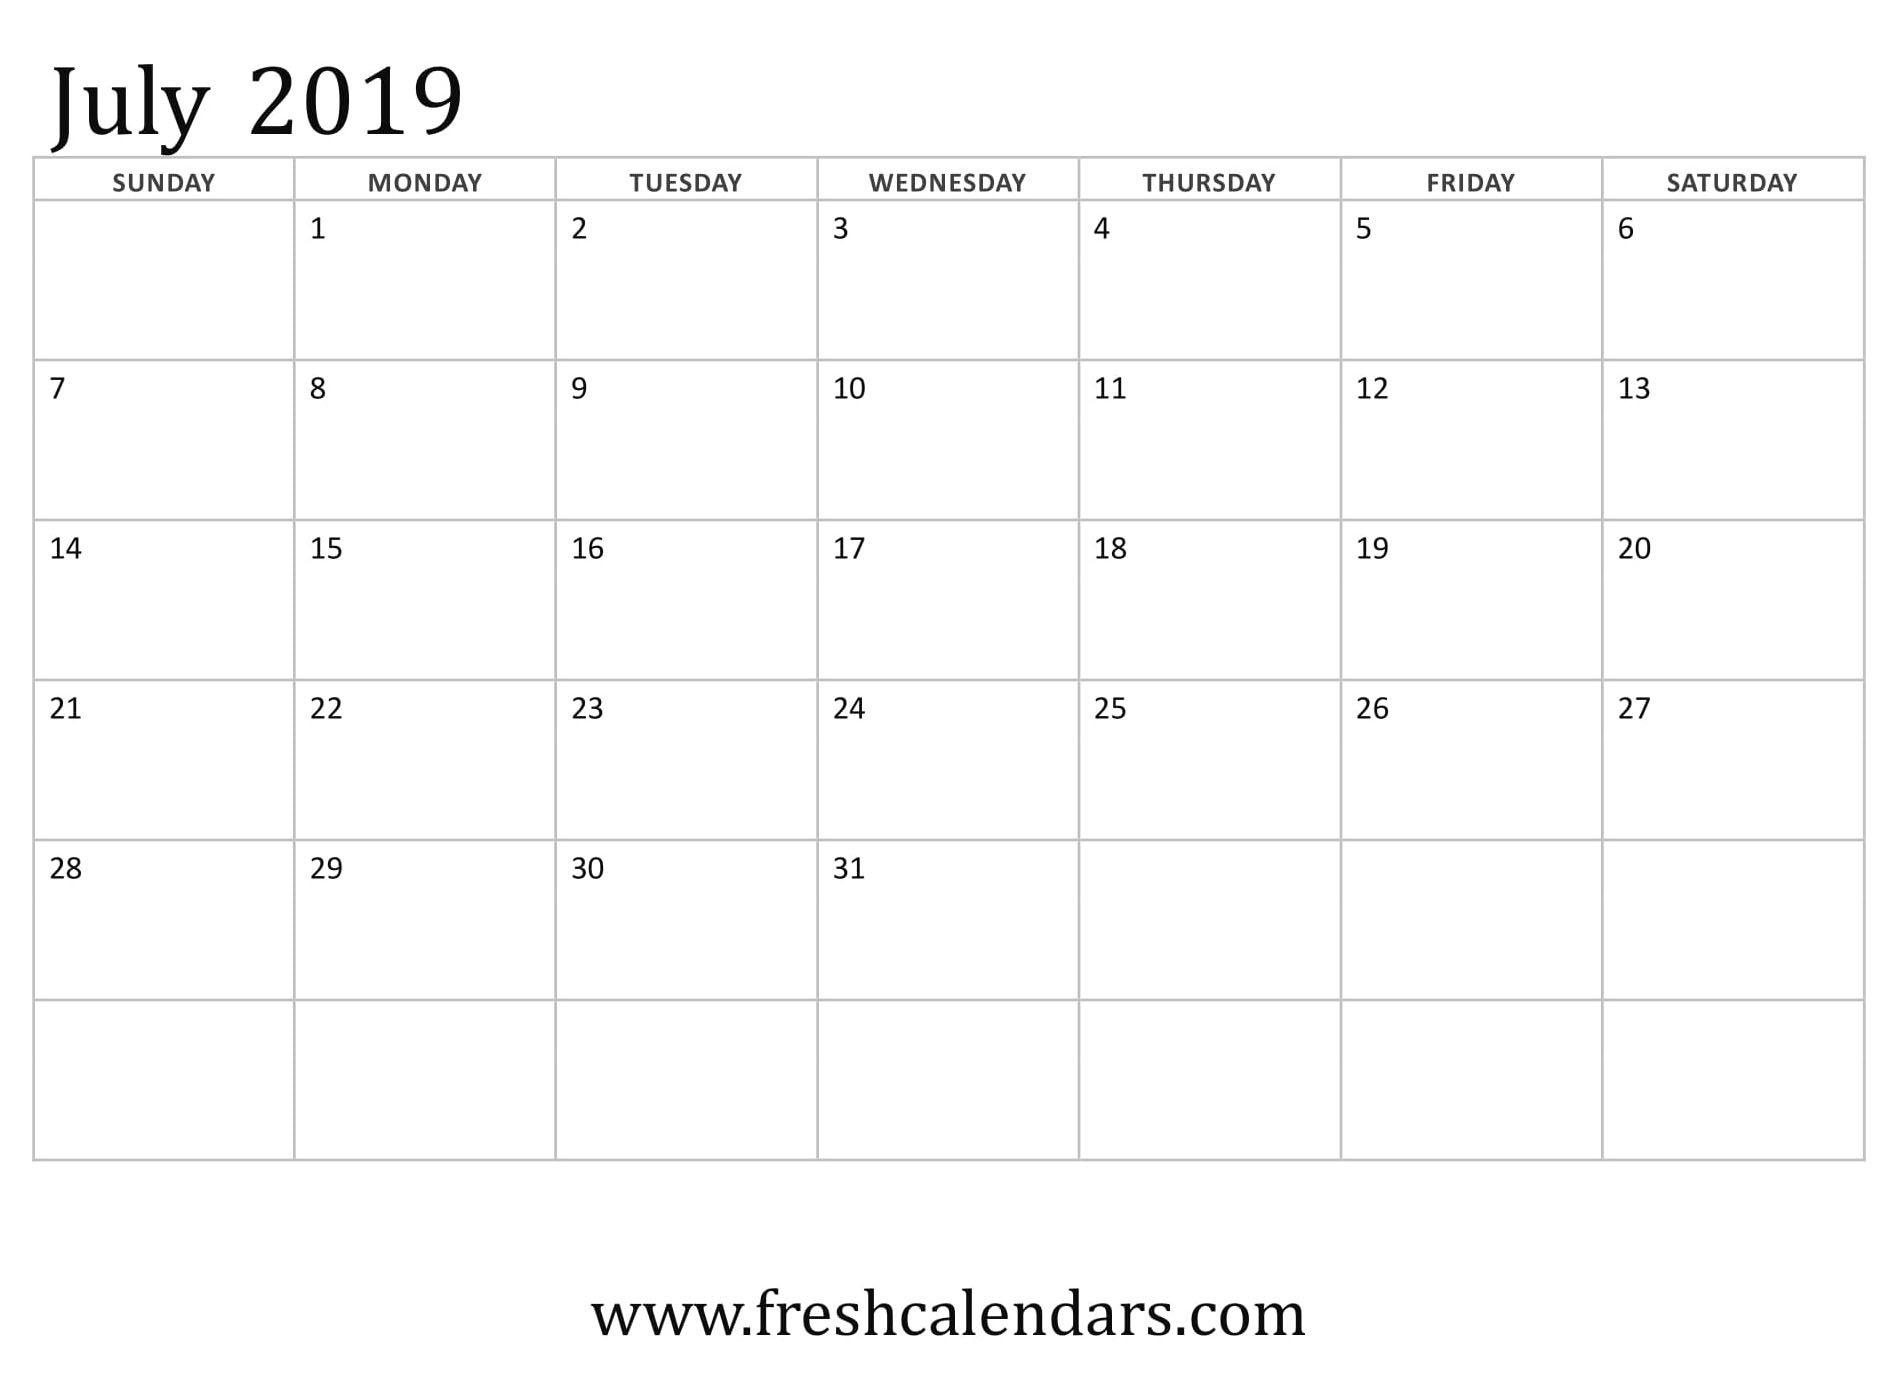 July 2019 Calendar Basic Template